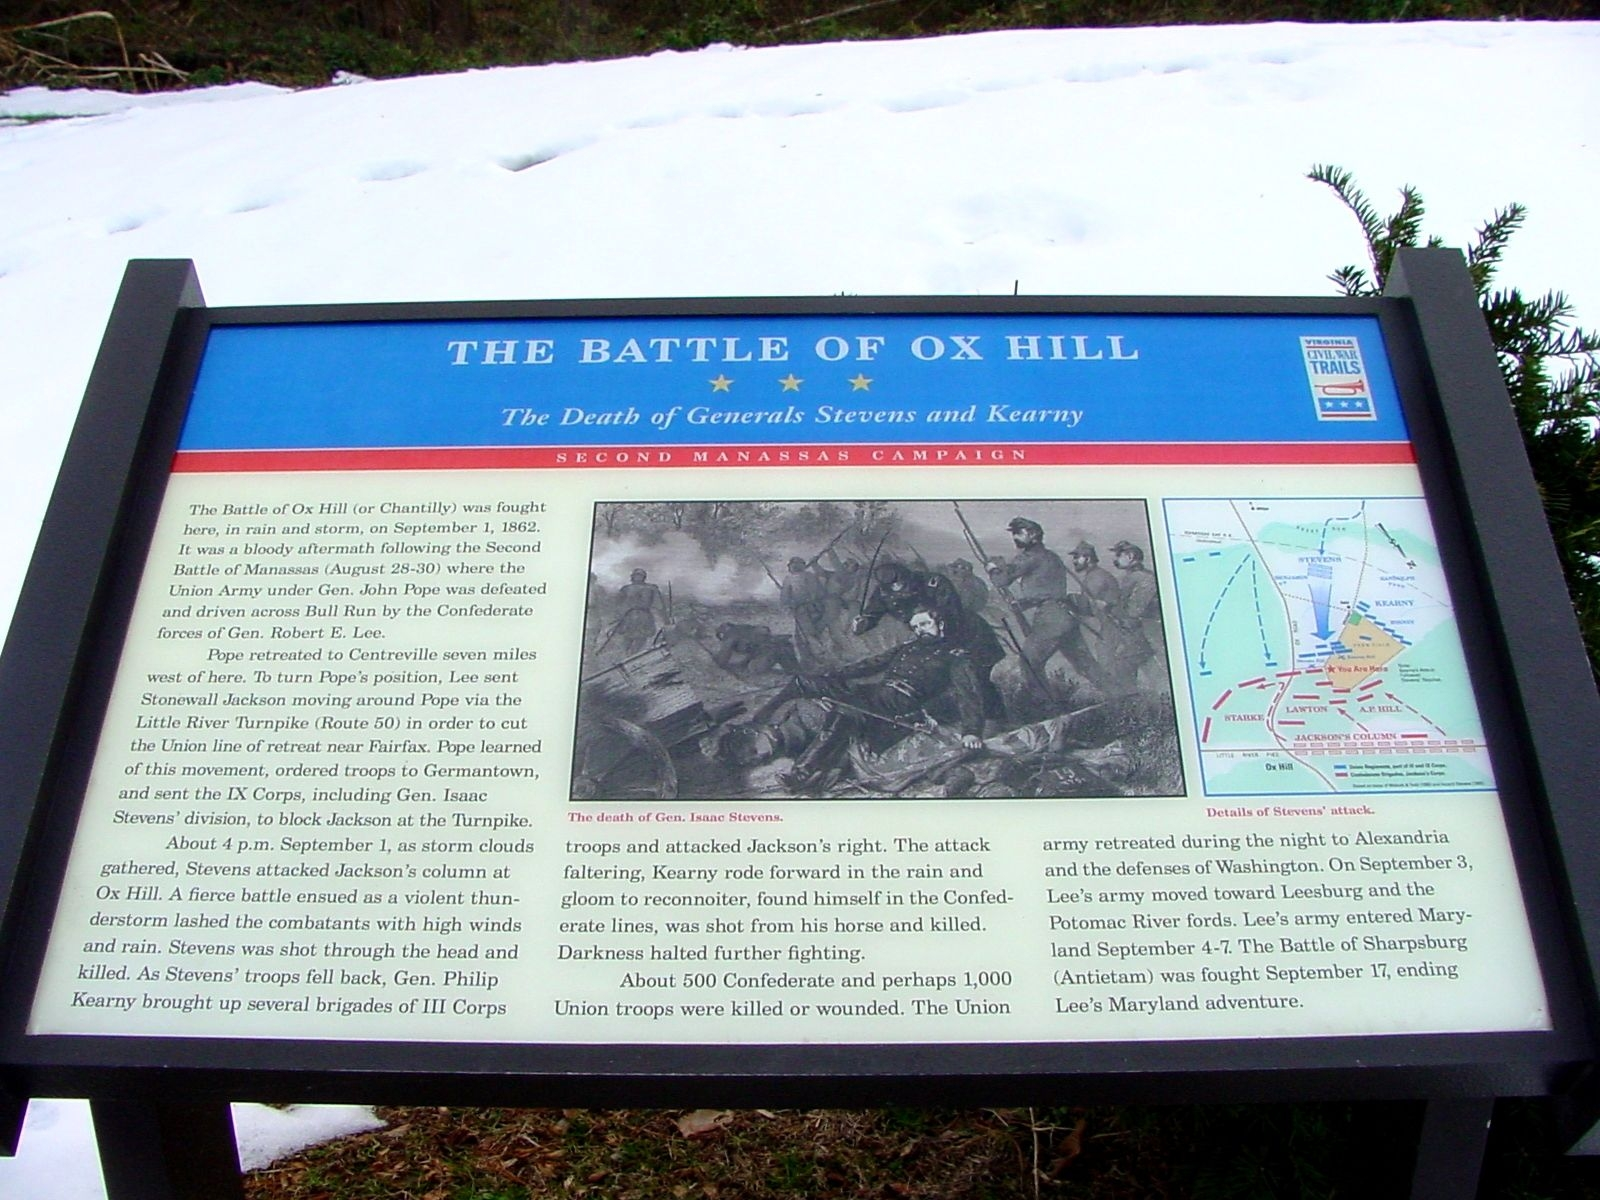 The Battle of Ox Hill Marker